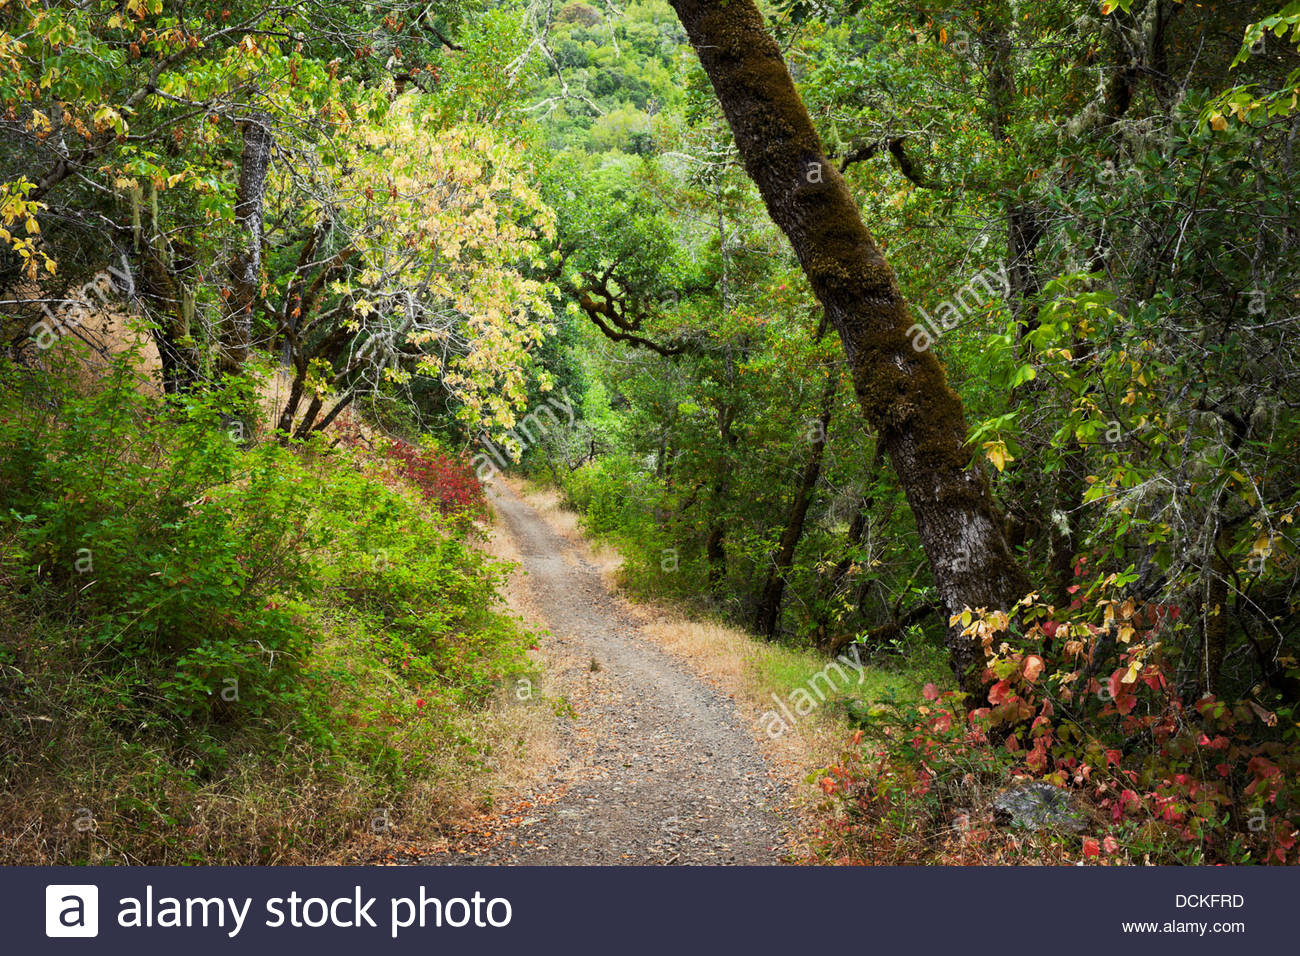 Cascade Canyon Open Space Preserve Hiking Trail, Fairfax, California - Stock Image